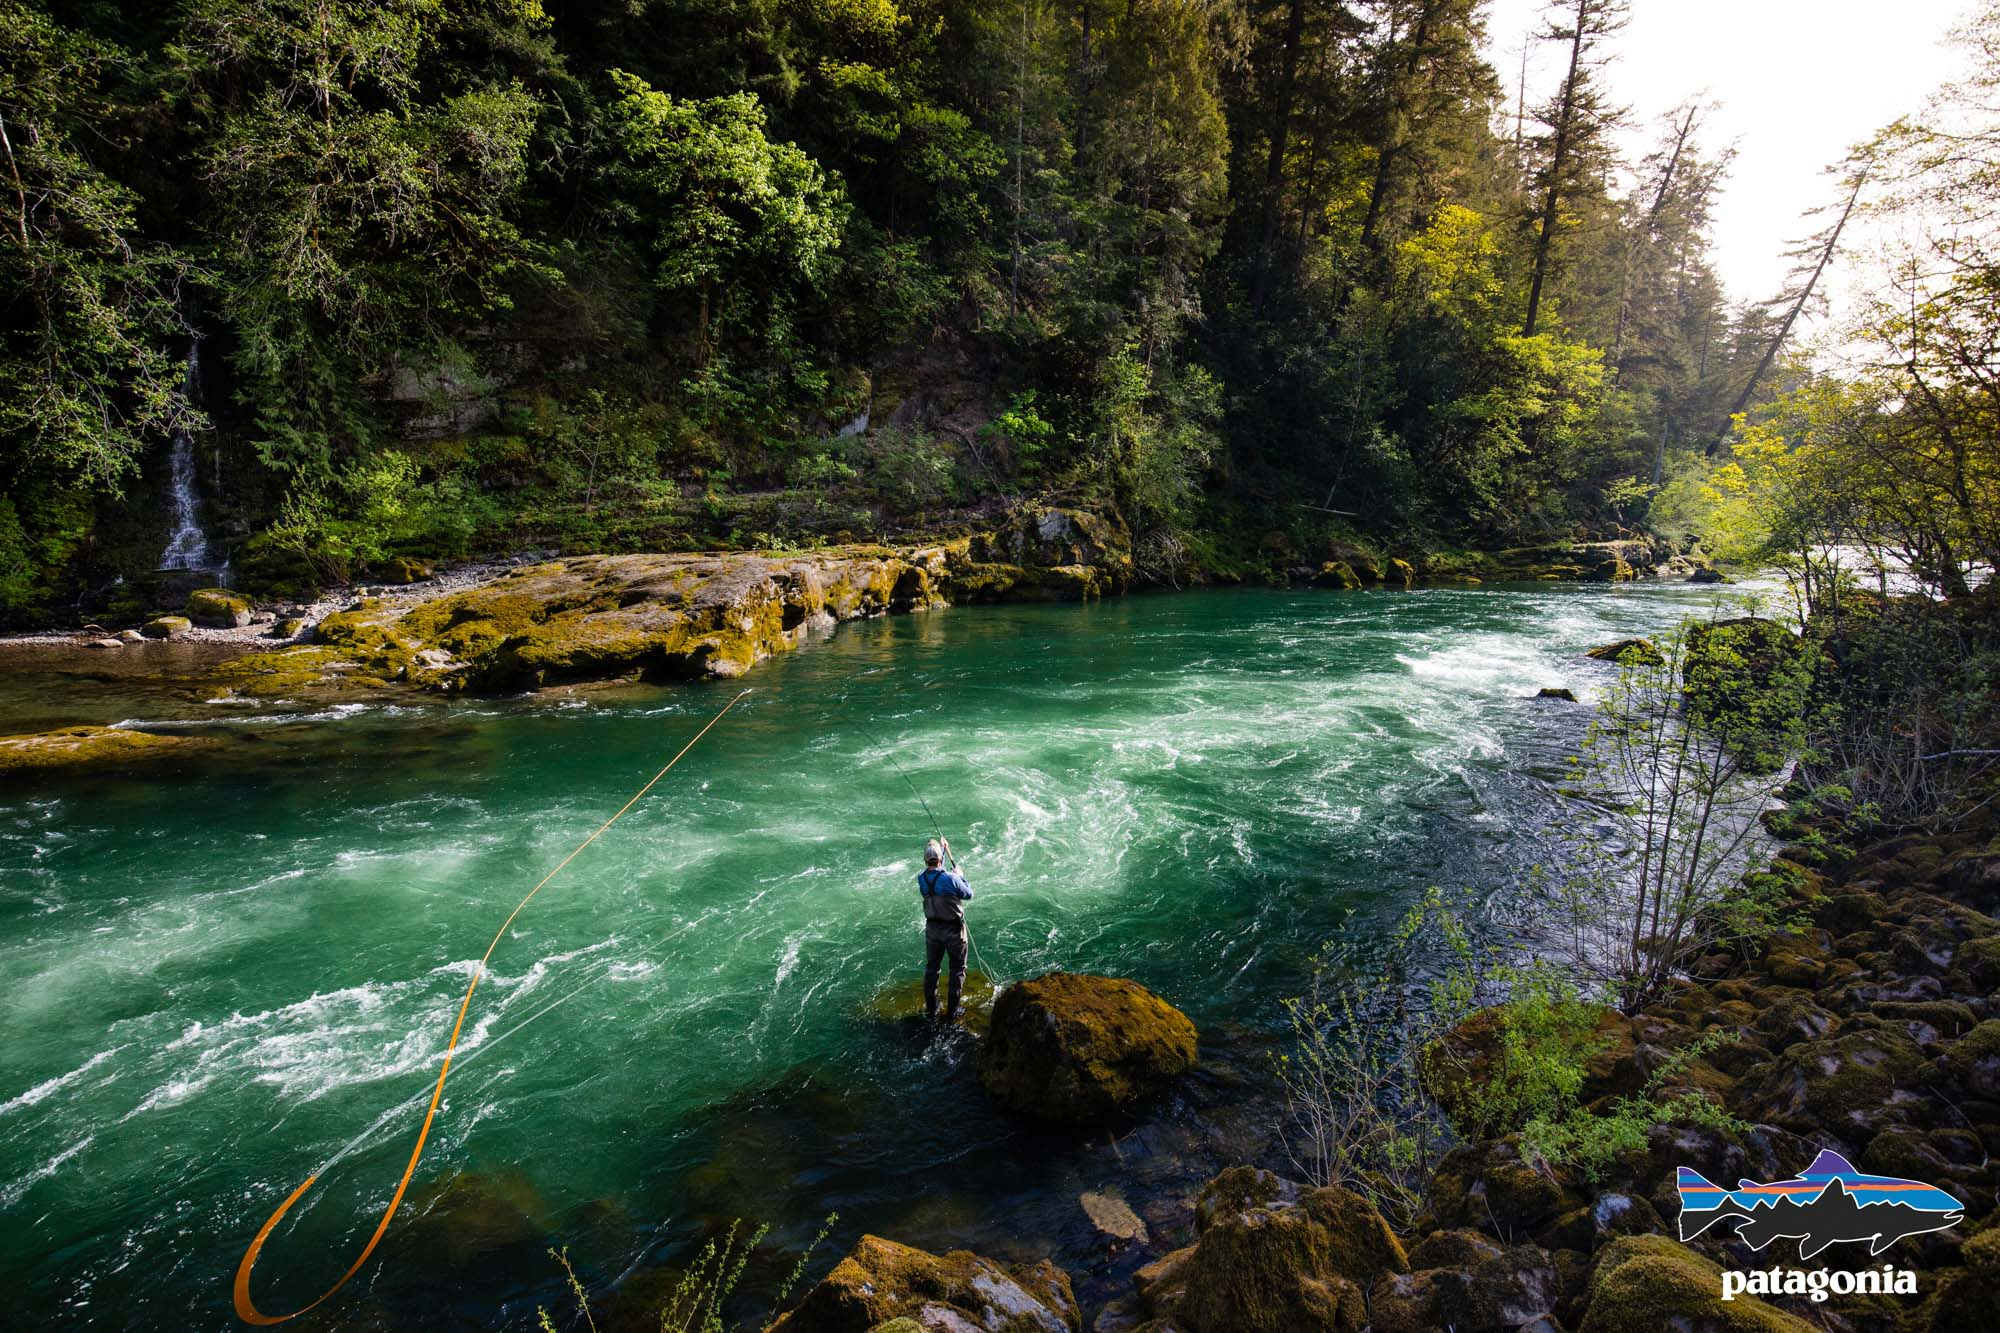 flyfishing-patagonia-commercial-photography-lifestyle-outdoor